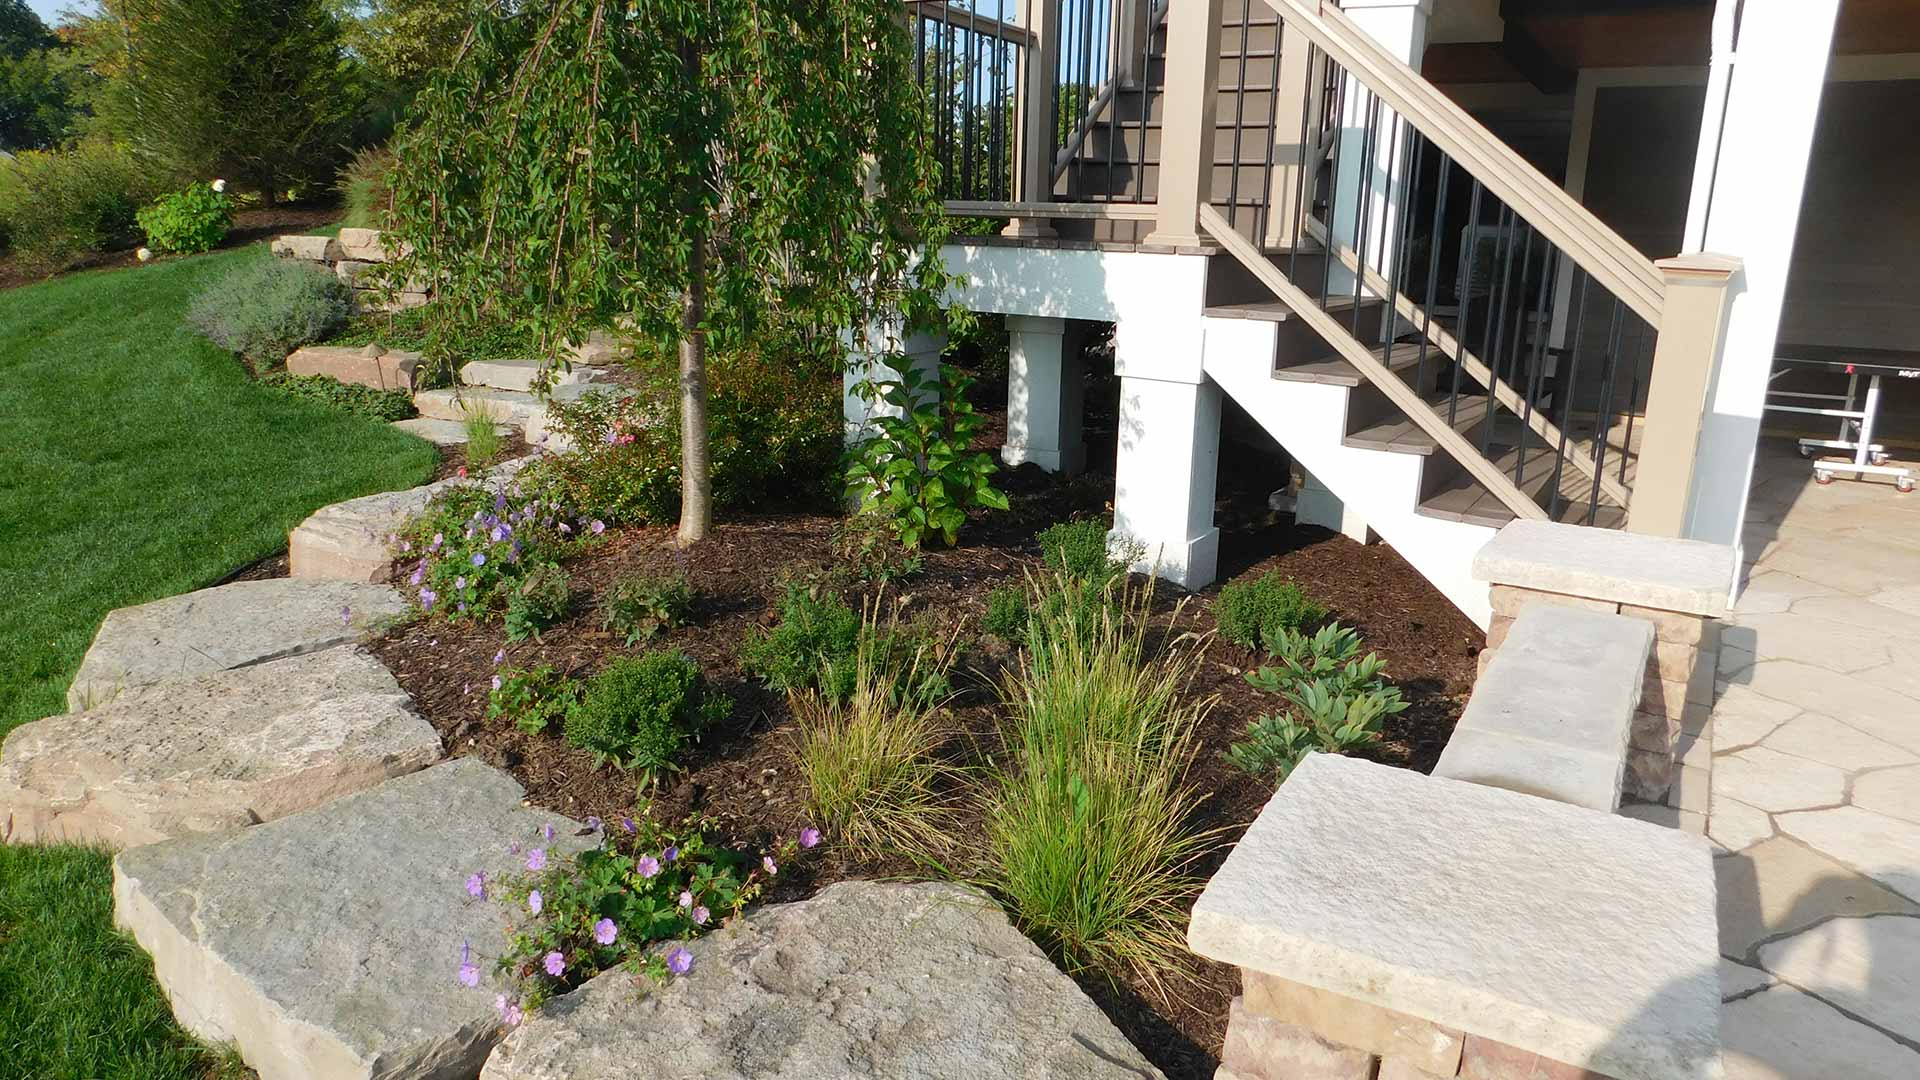 Corner mulch bed landscape feature in Cascade, MI.